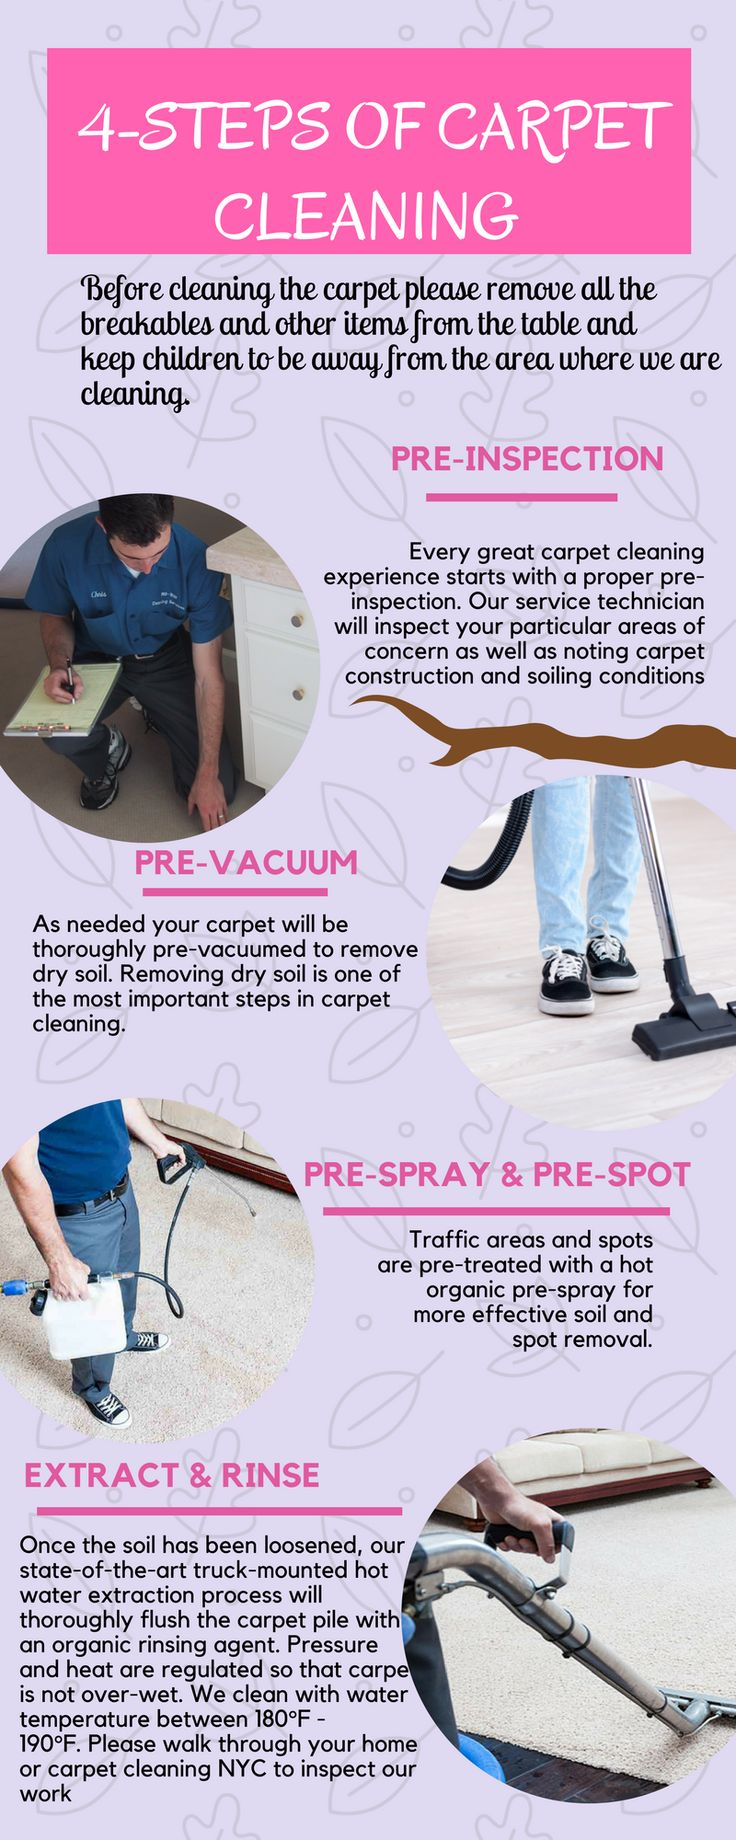 calgary cleaning tips cook carpet information graphics info graphics rugs household cleaning tips